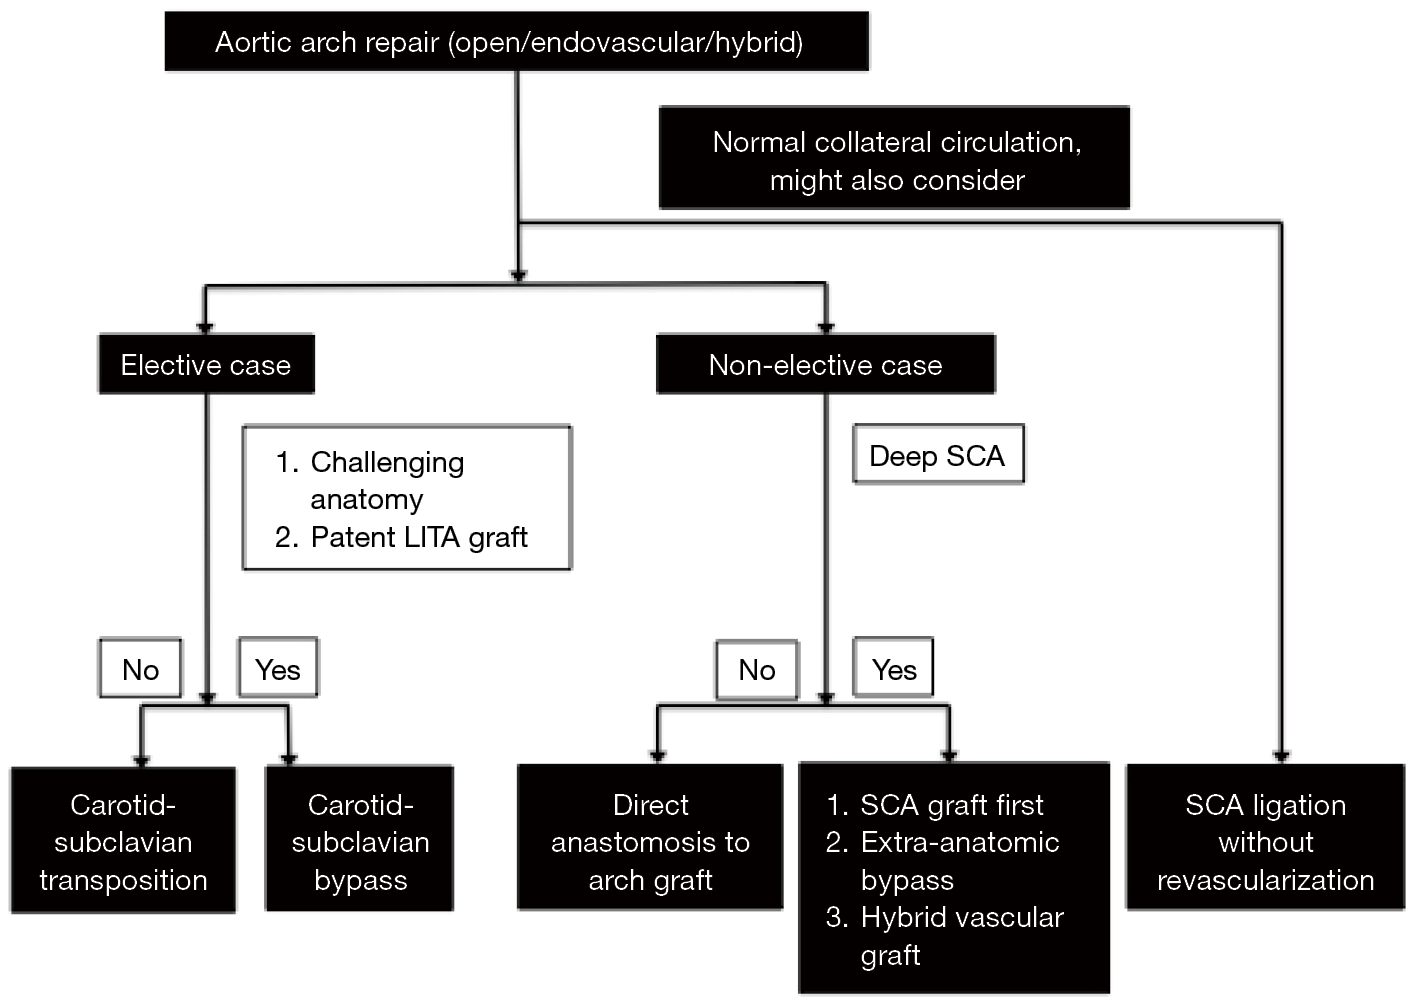 Management Of The Difficult Left Subclavian Artery During Aortic